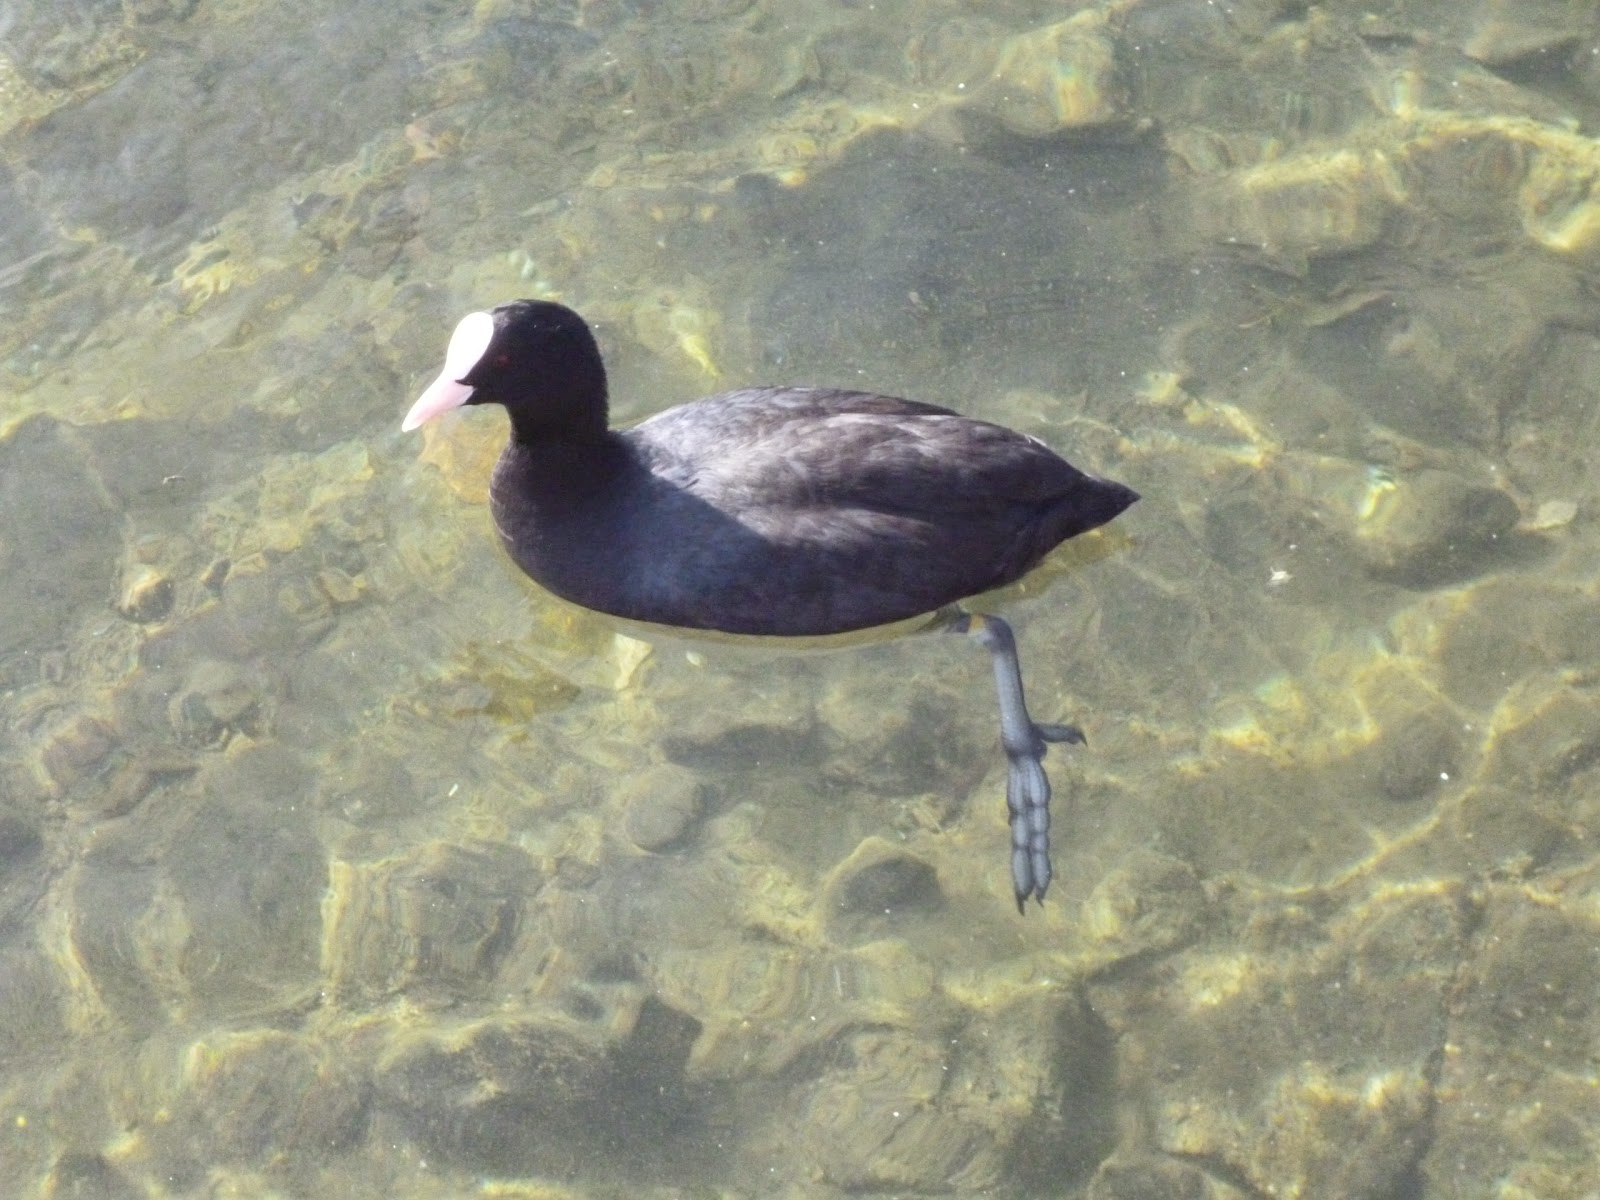 coot swimming on clear water